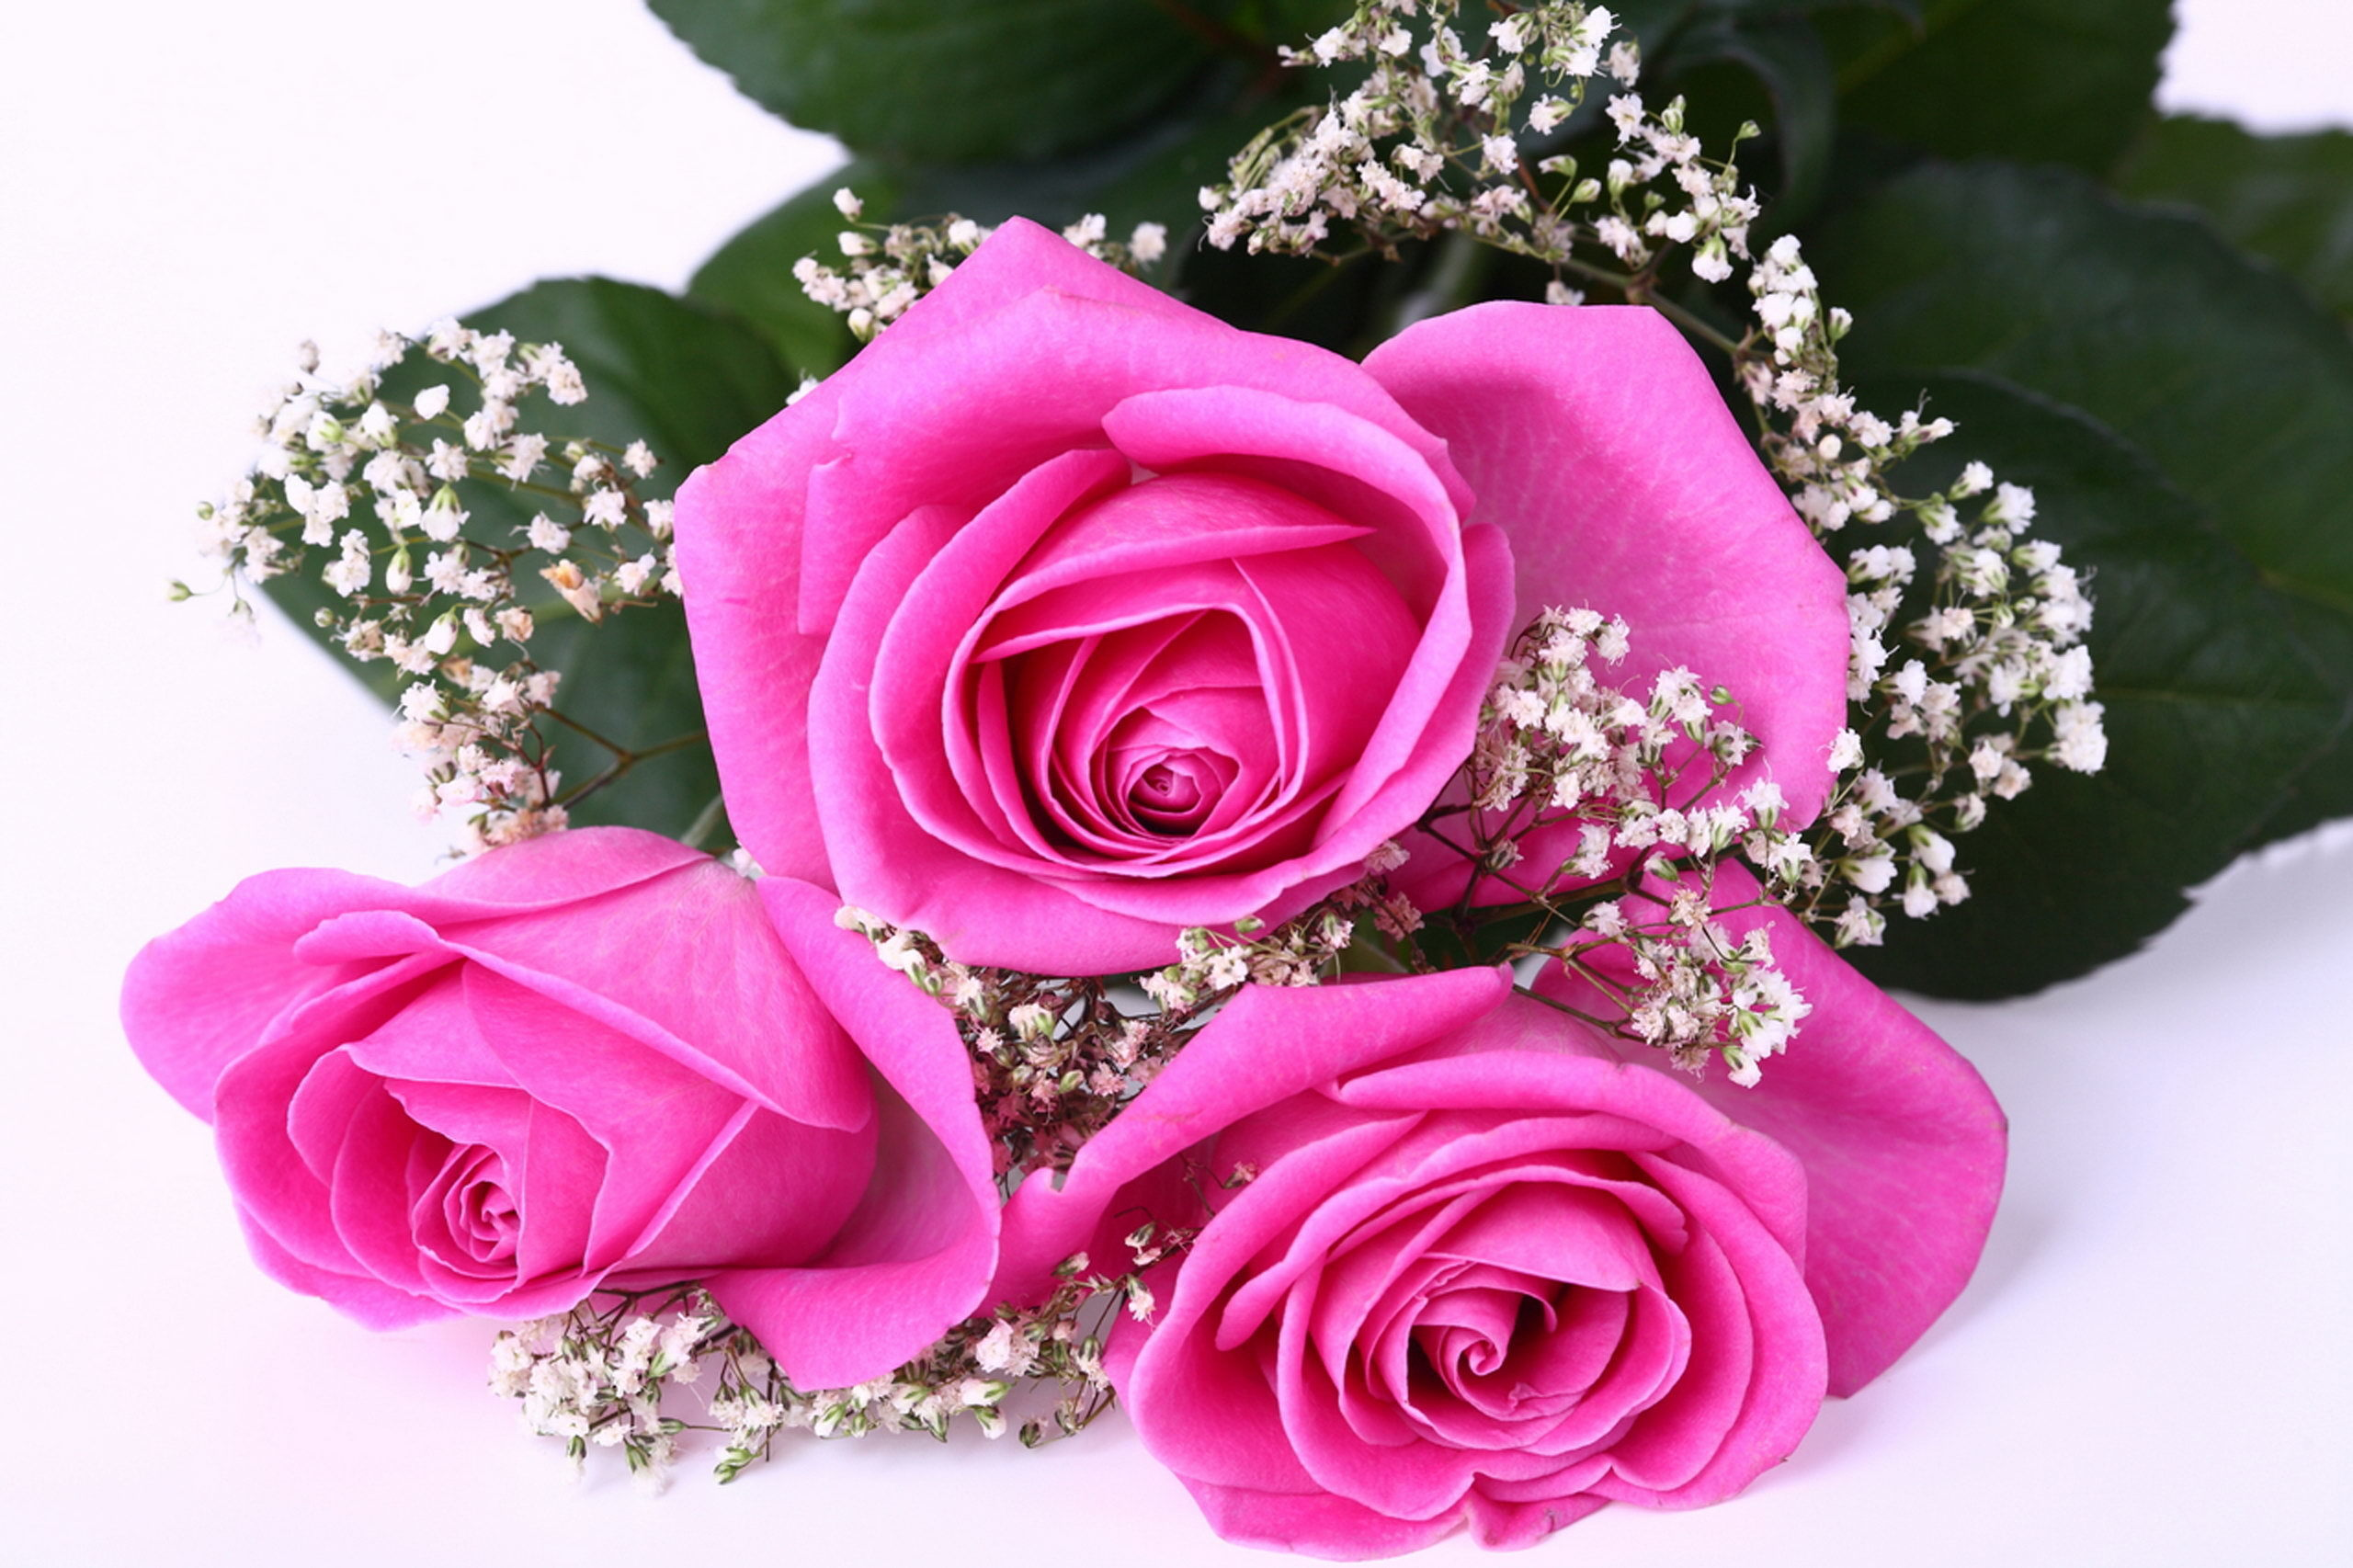 Images Roses Pink Color Flowers 2560x1706